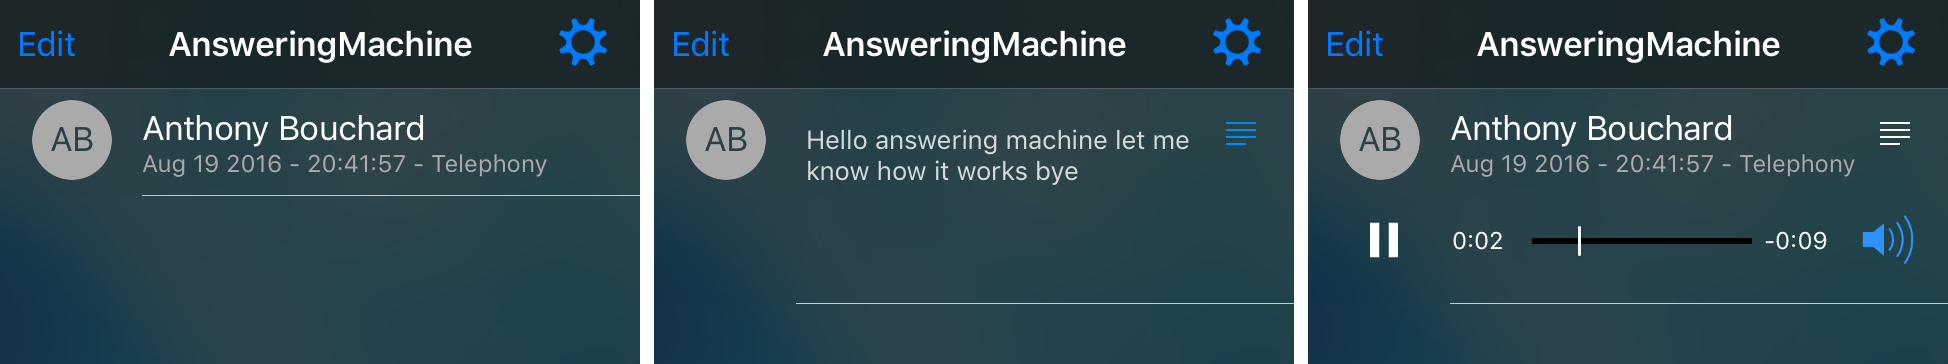 AnsweringMachine Header